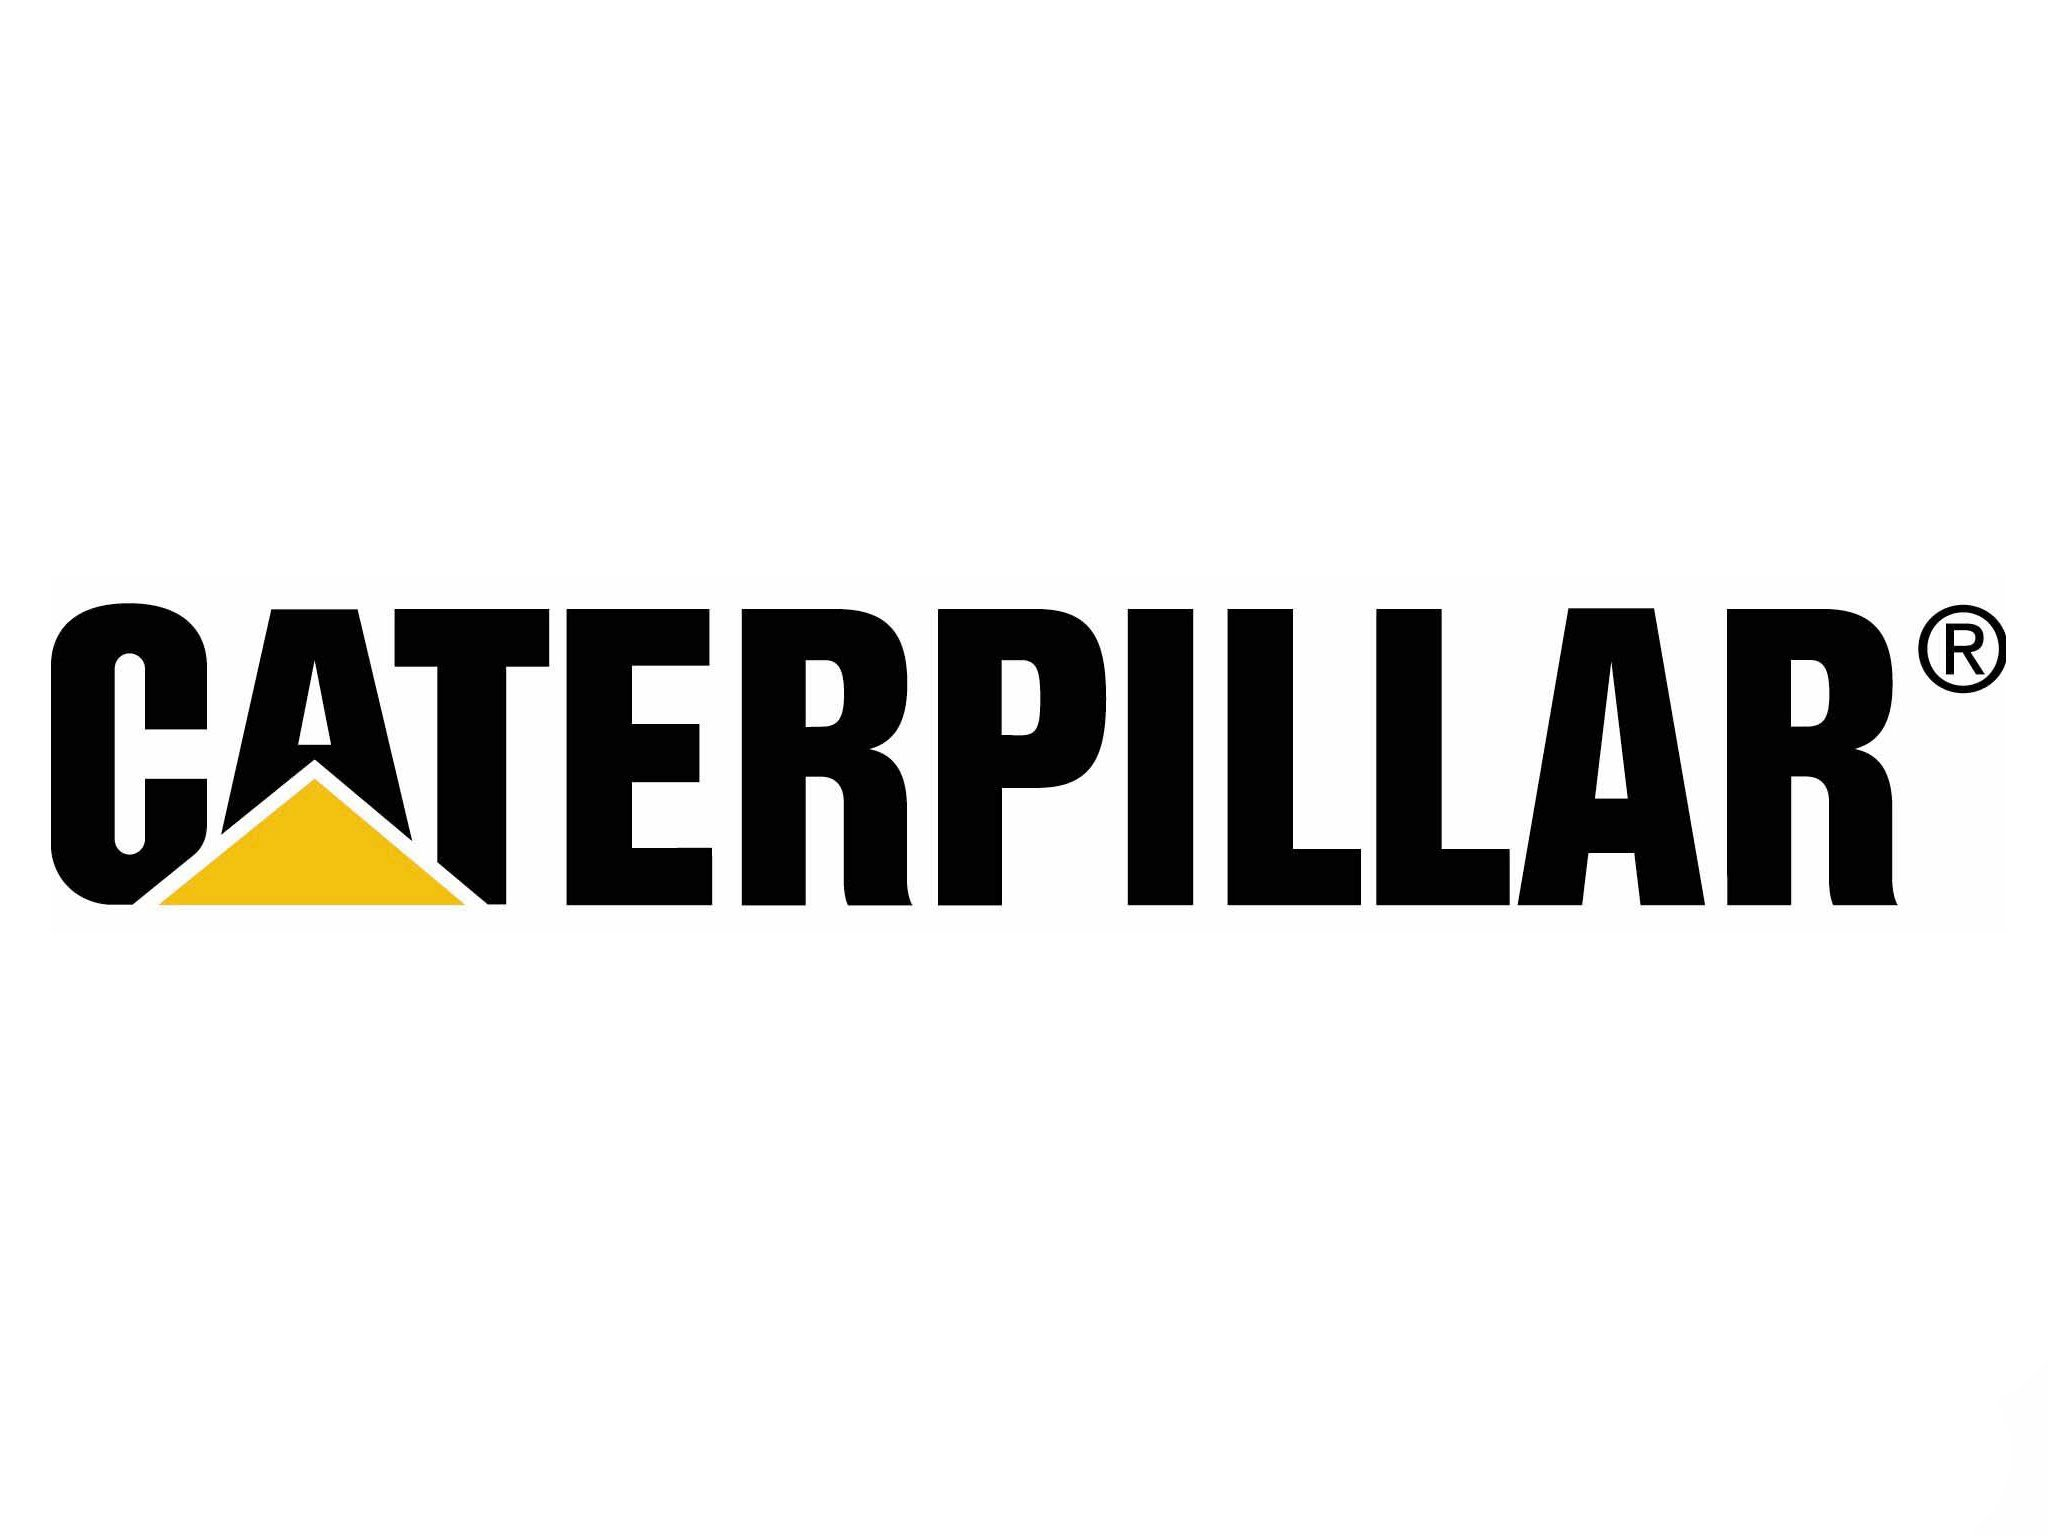 Caterpillar - Could be moving jobs to Decatur